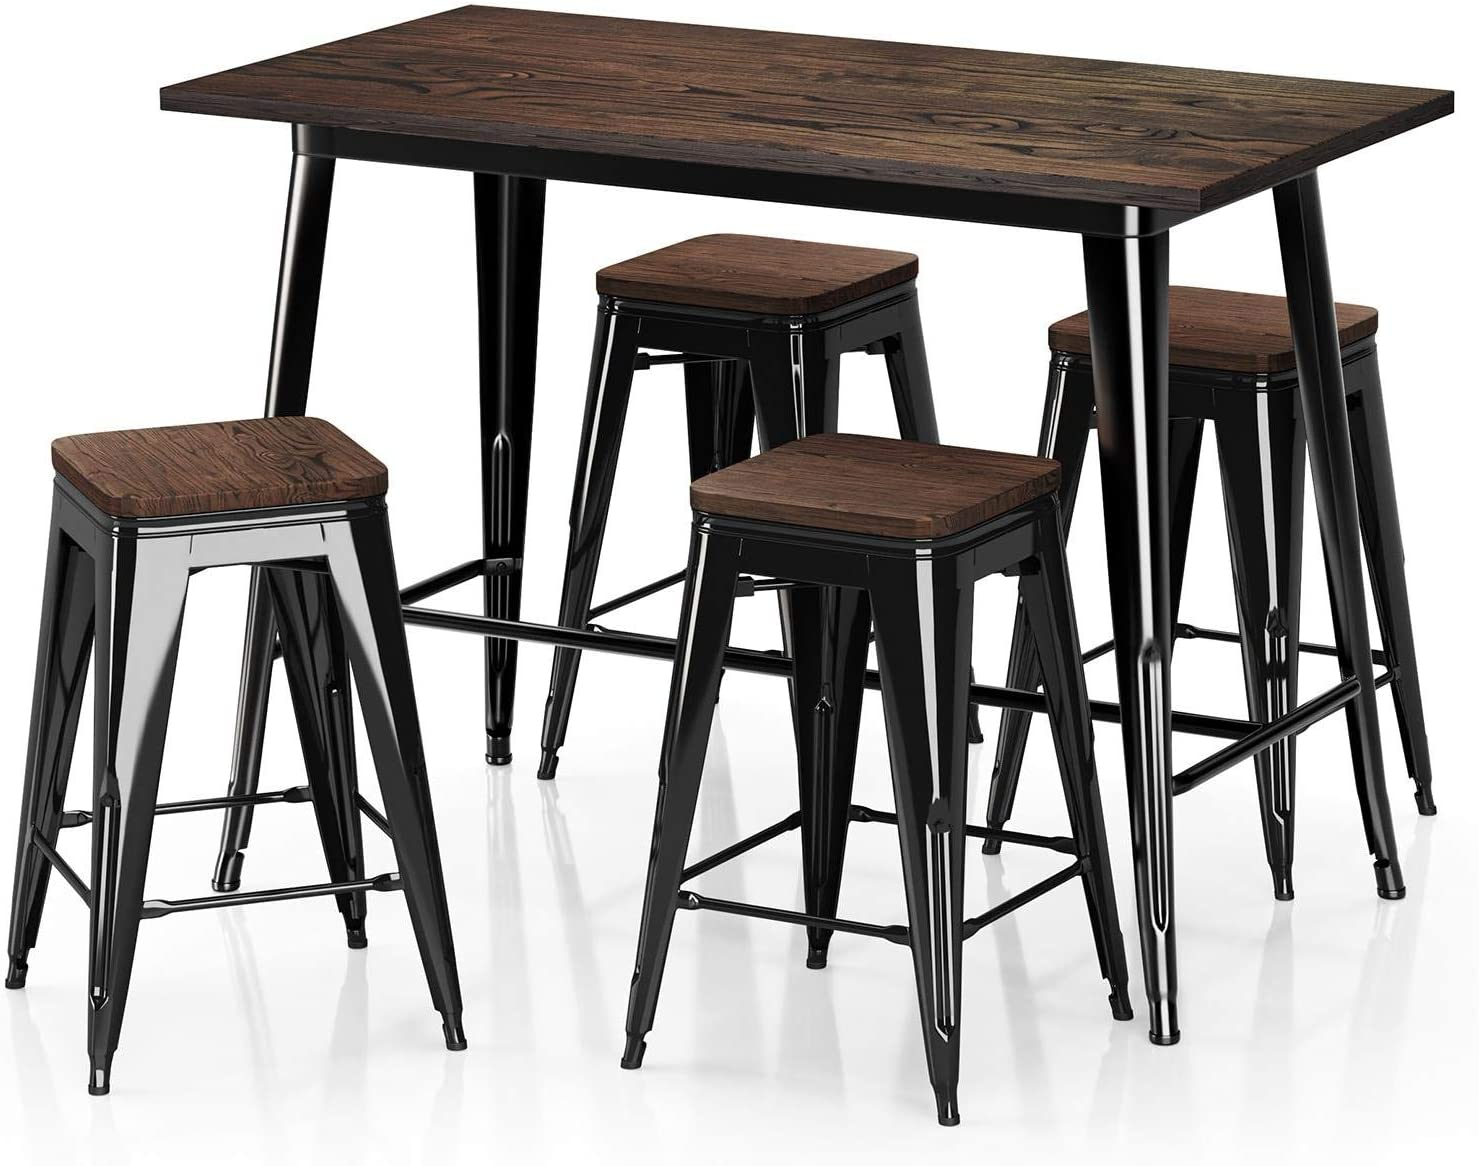 Amazon Com Vipek 35 43 Metal Counter Height Dining Table 24 Stools Sets With Solid Wood Top Heavy Duty Rectangle Dining Table 4pcs Barstool For Farmhouse Patio Pub Bar Restaurant Bistro Gloss